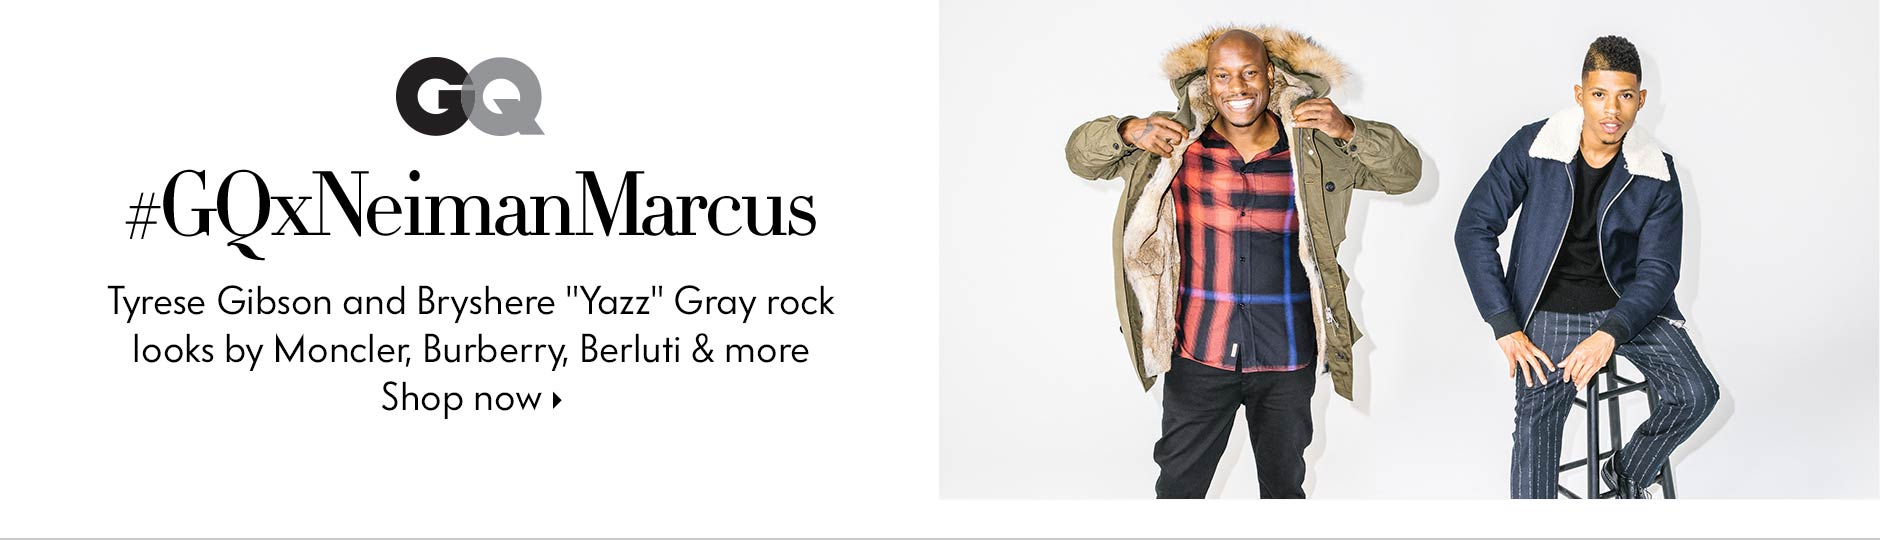 GQ: #GQxNeimanMarcus - Tyrese & Bryshere rock looks by Moncler, Burberry, Berluti & more